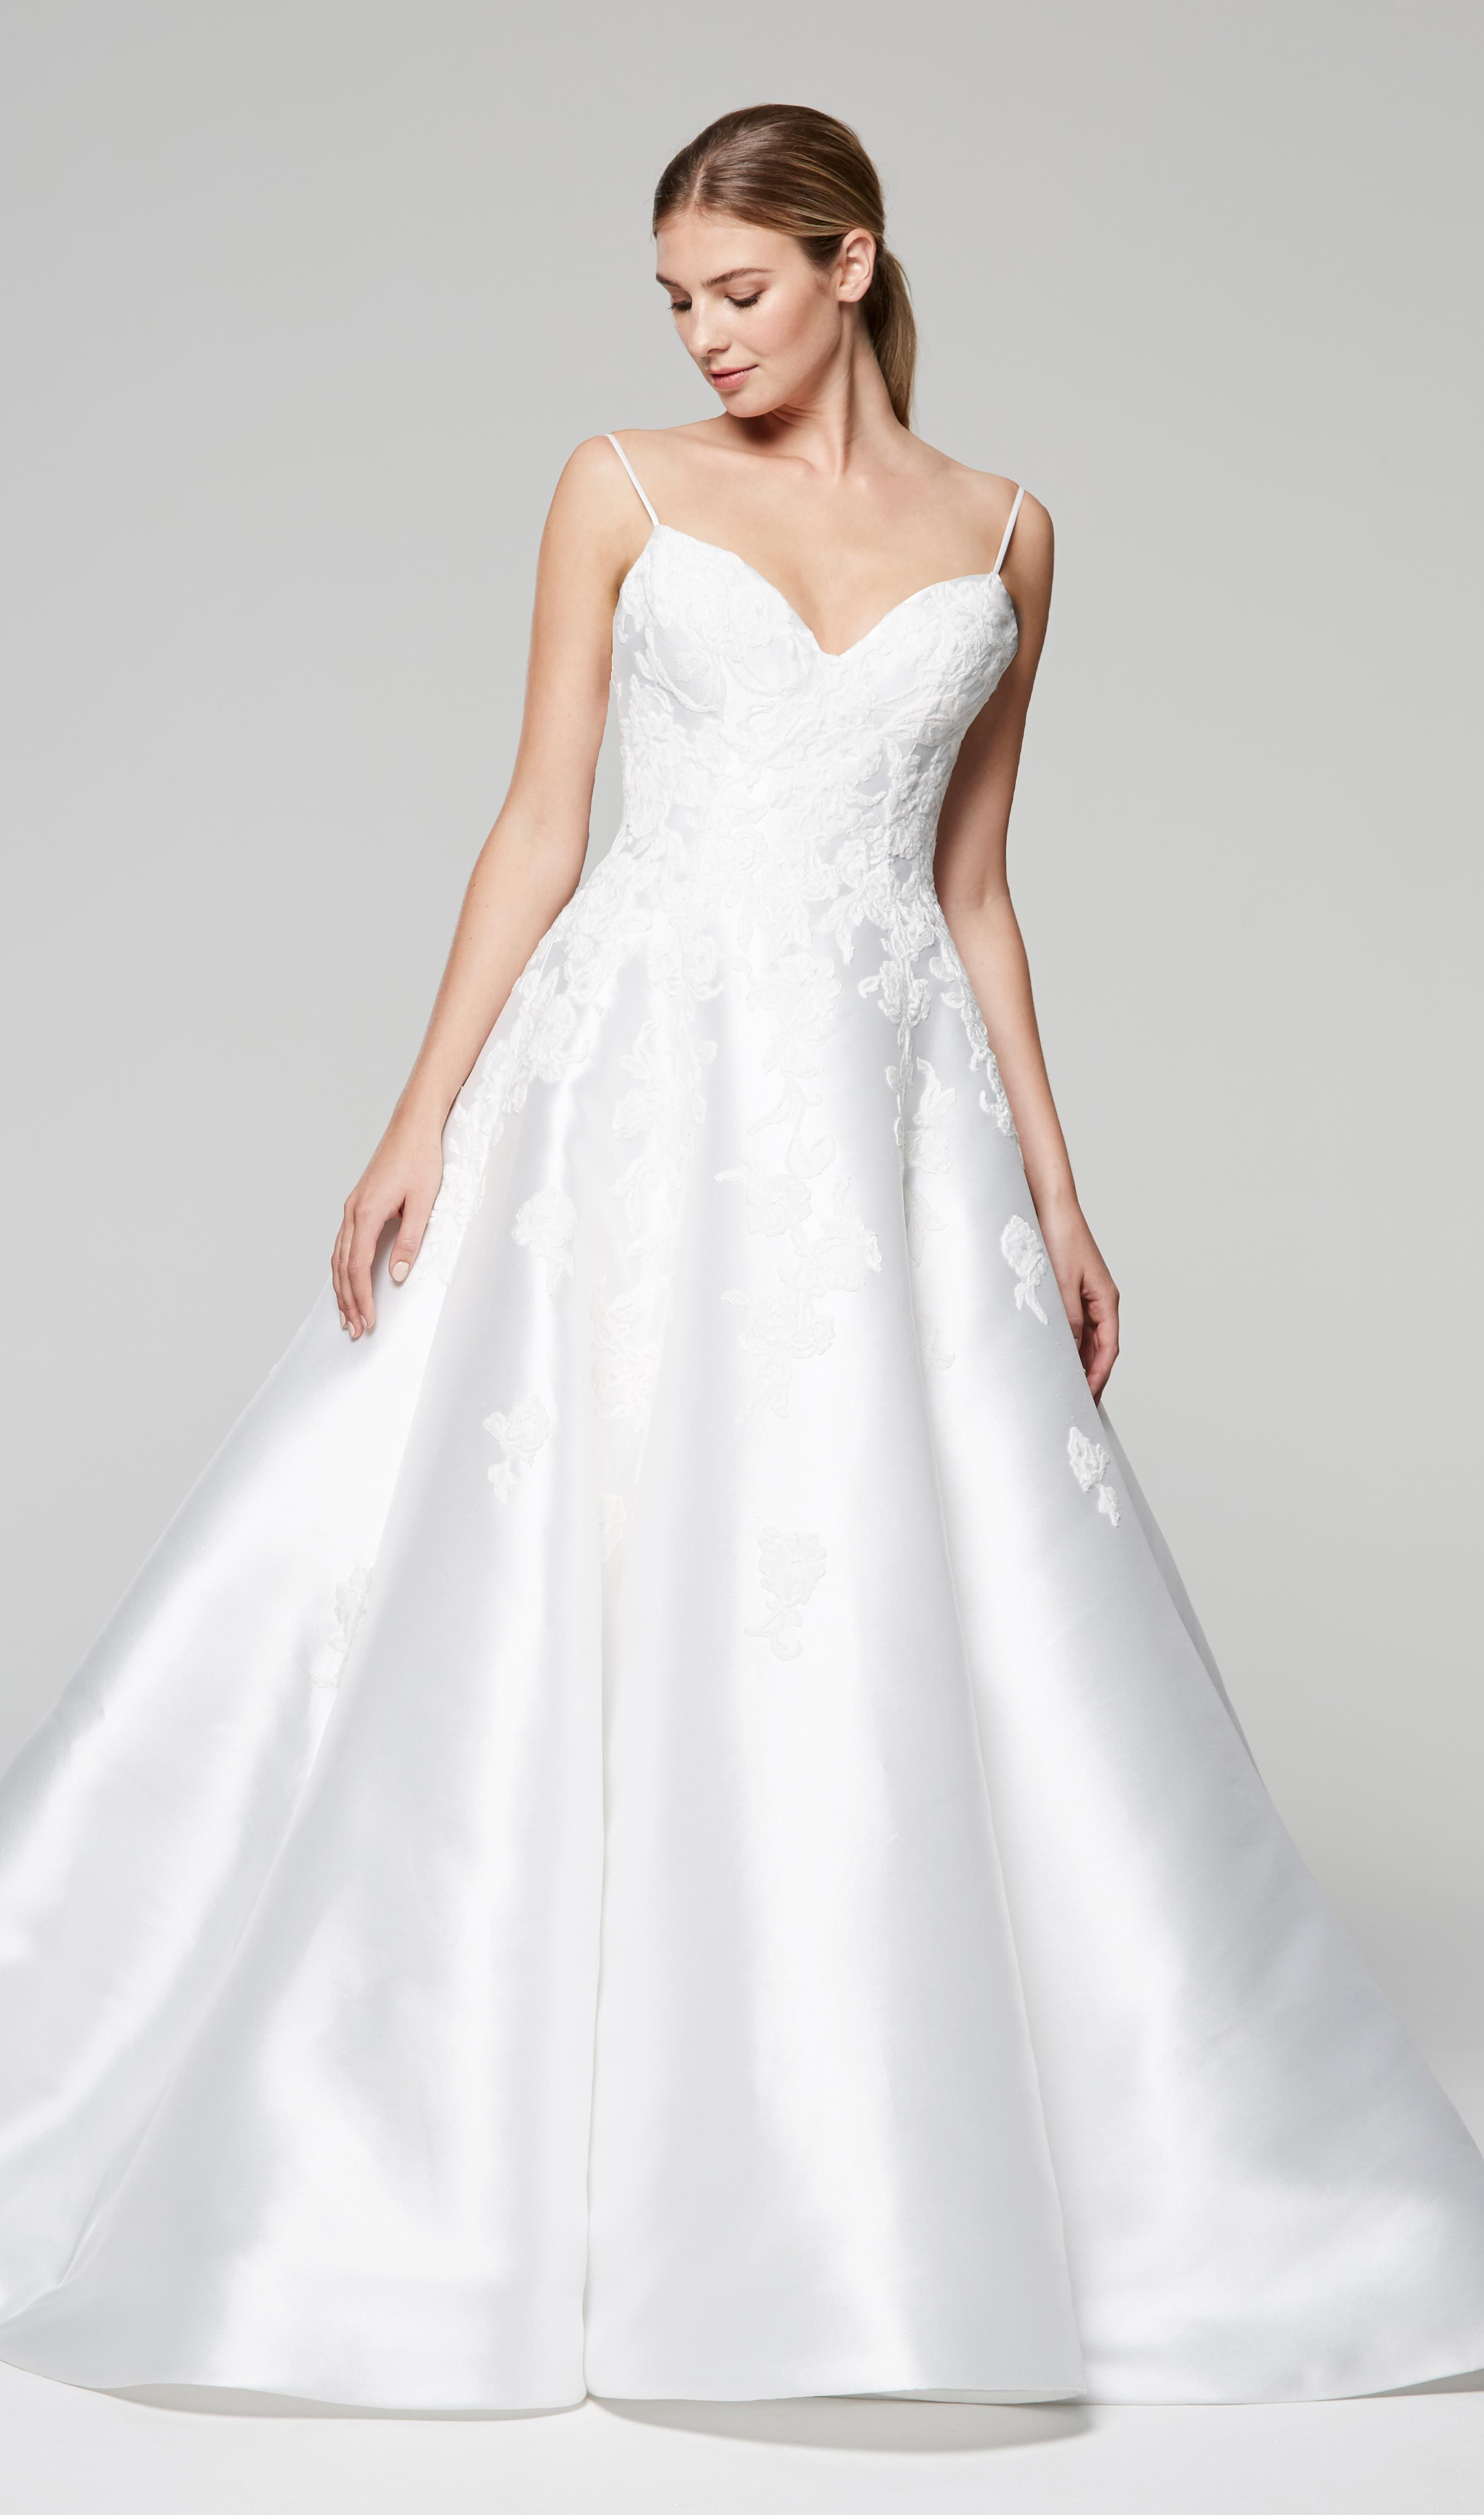 84a0016413f LOUISA - Blue Willow Bride by Anne Barge